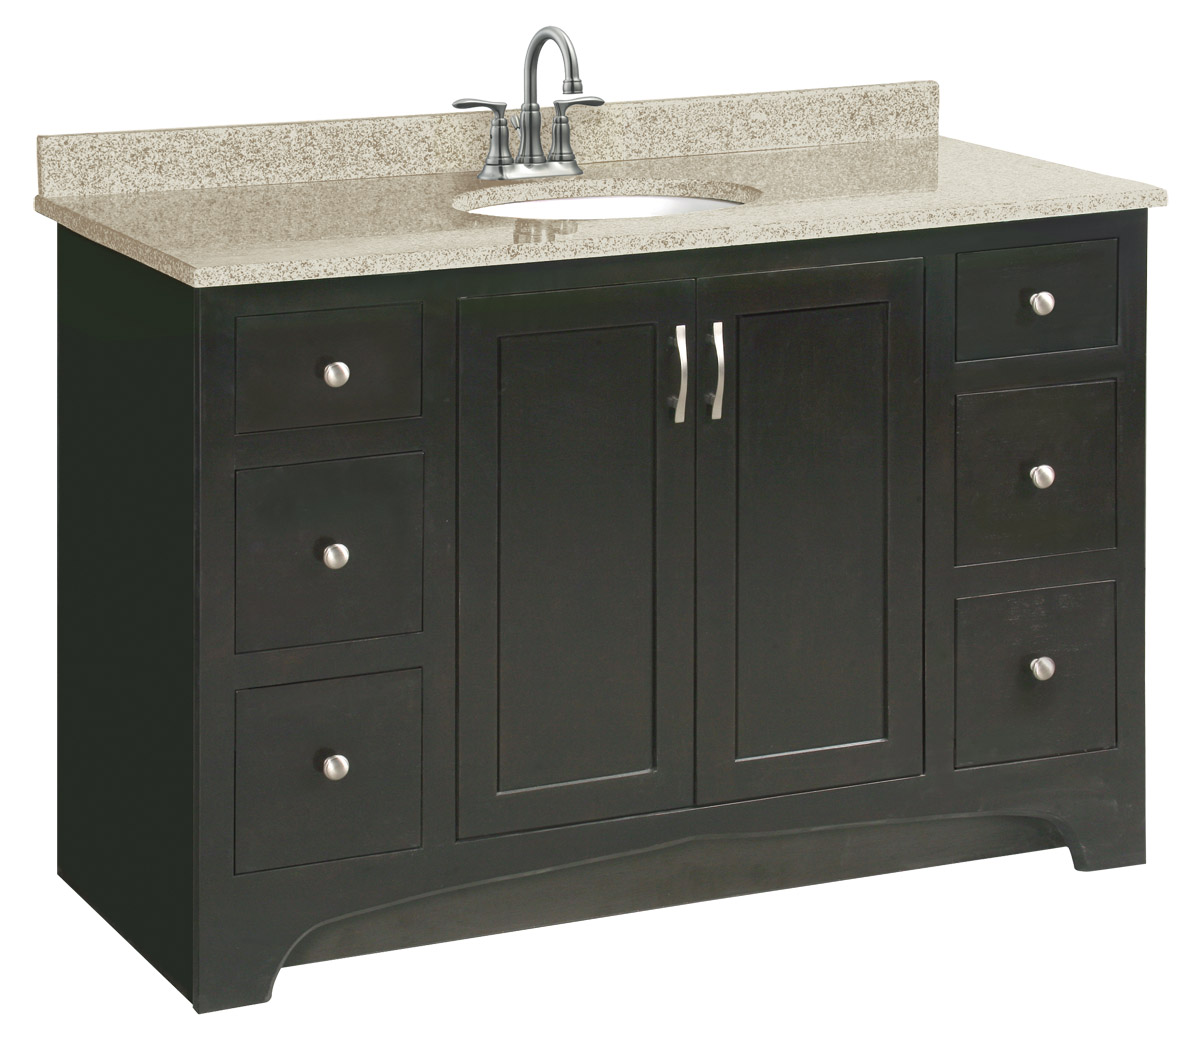 Design House 539627 Ventura Espresso Vanity Cabinet with 2-Doors and 4-Drawers 48-Inches by 33.5-Inches